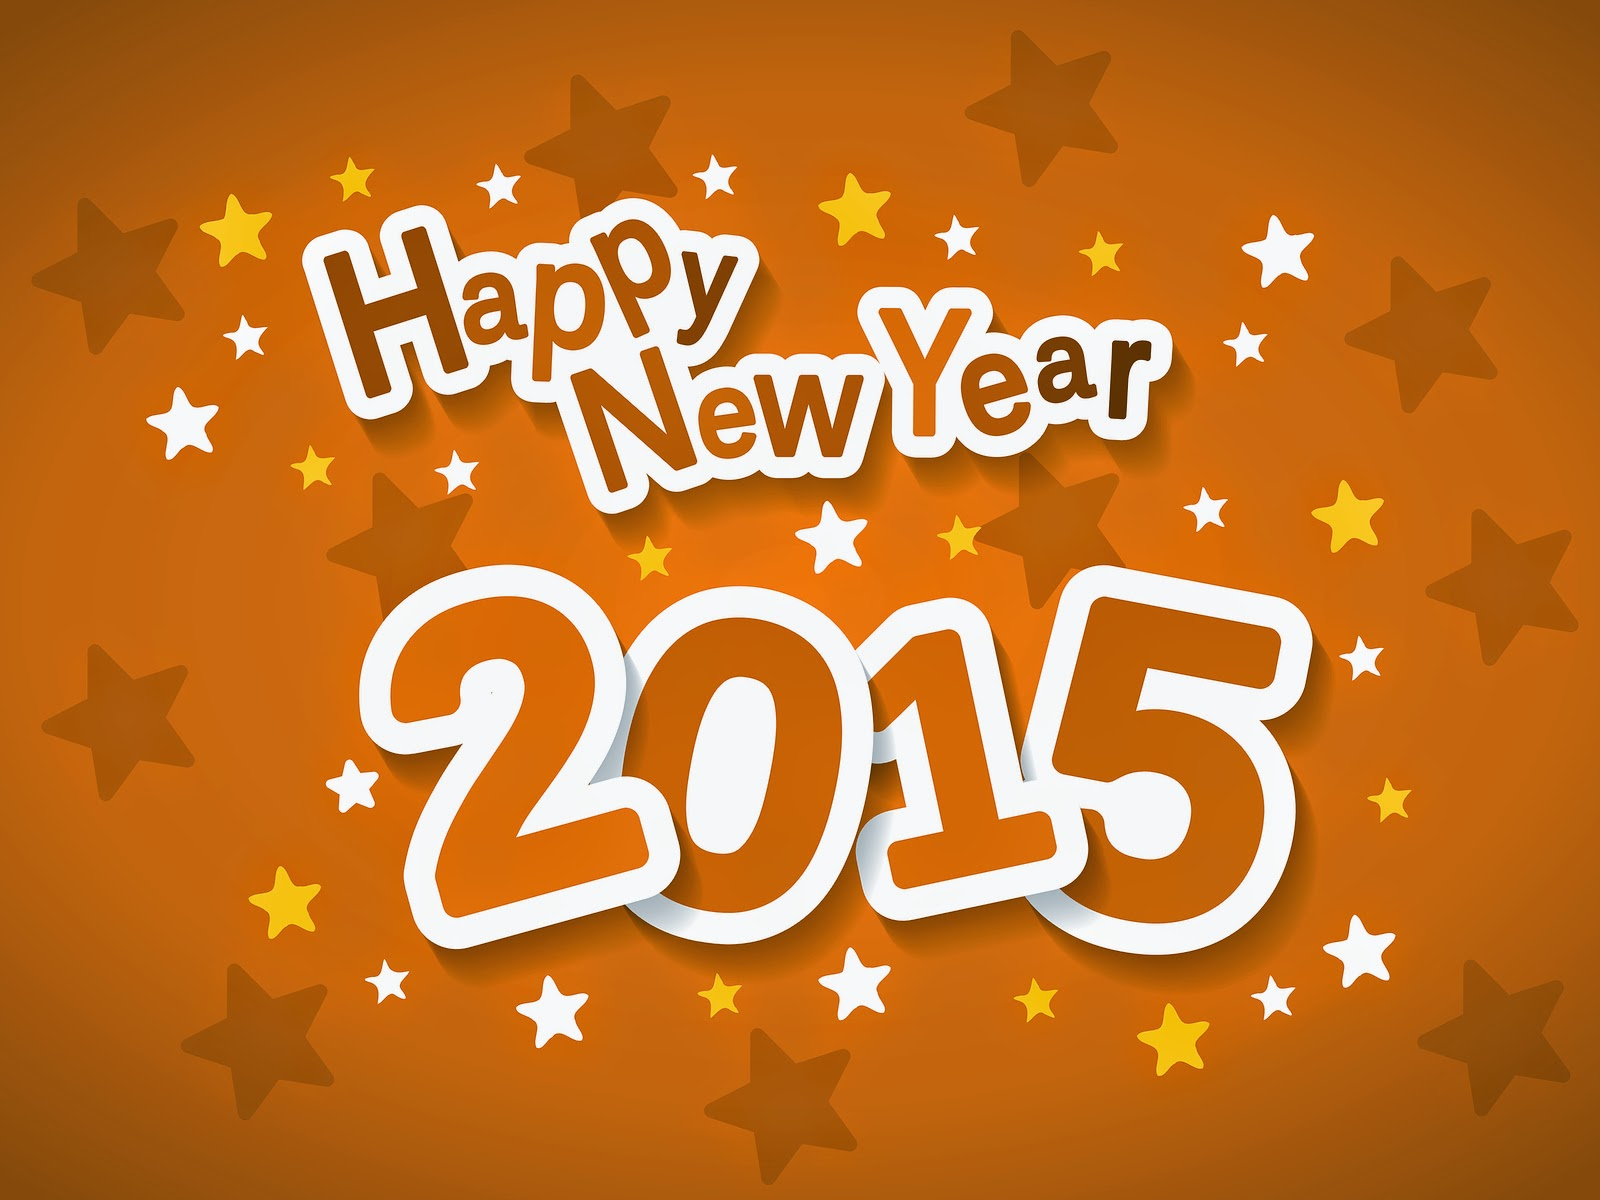 2015 Happy New Year Images